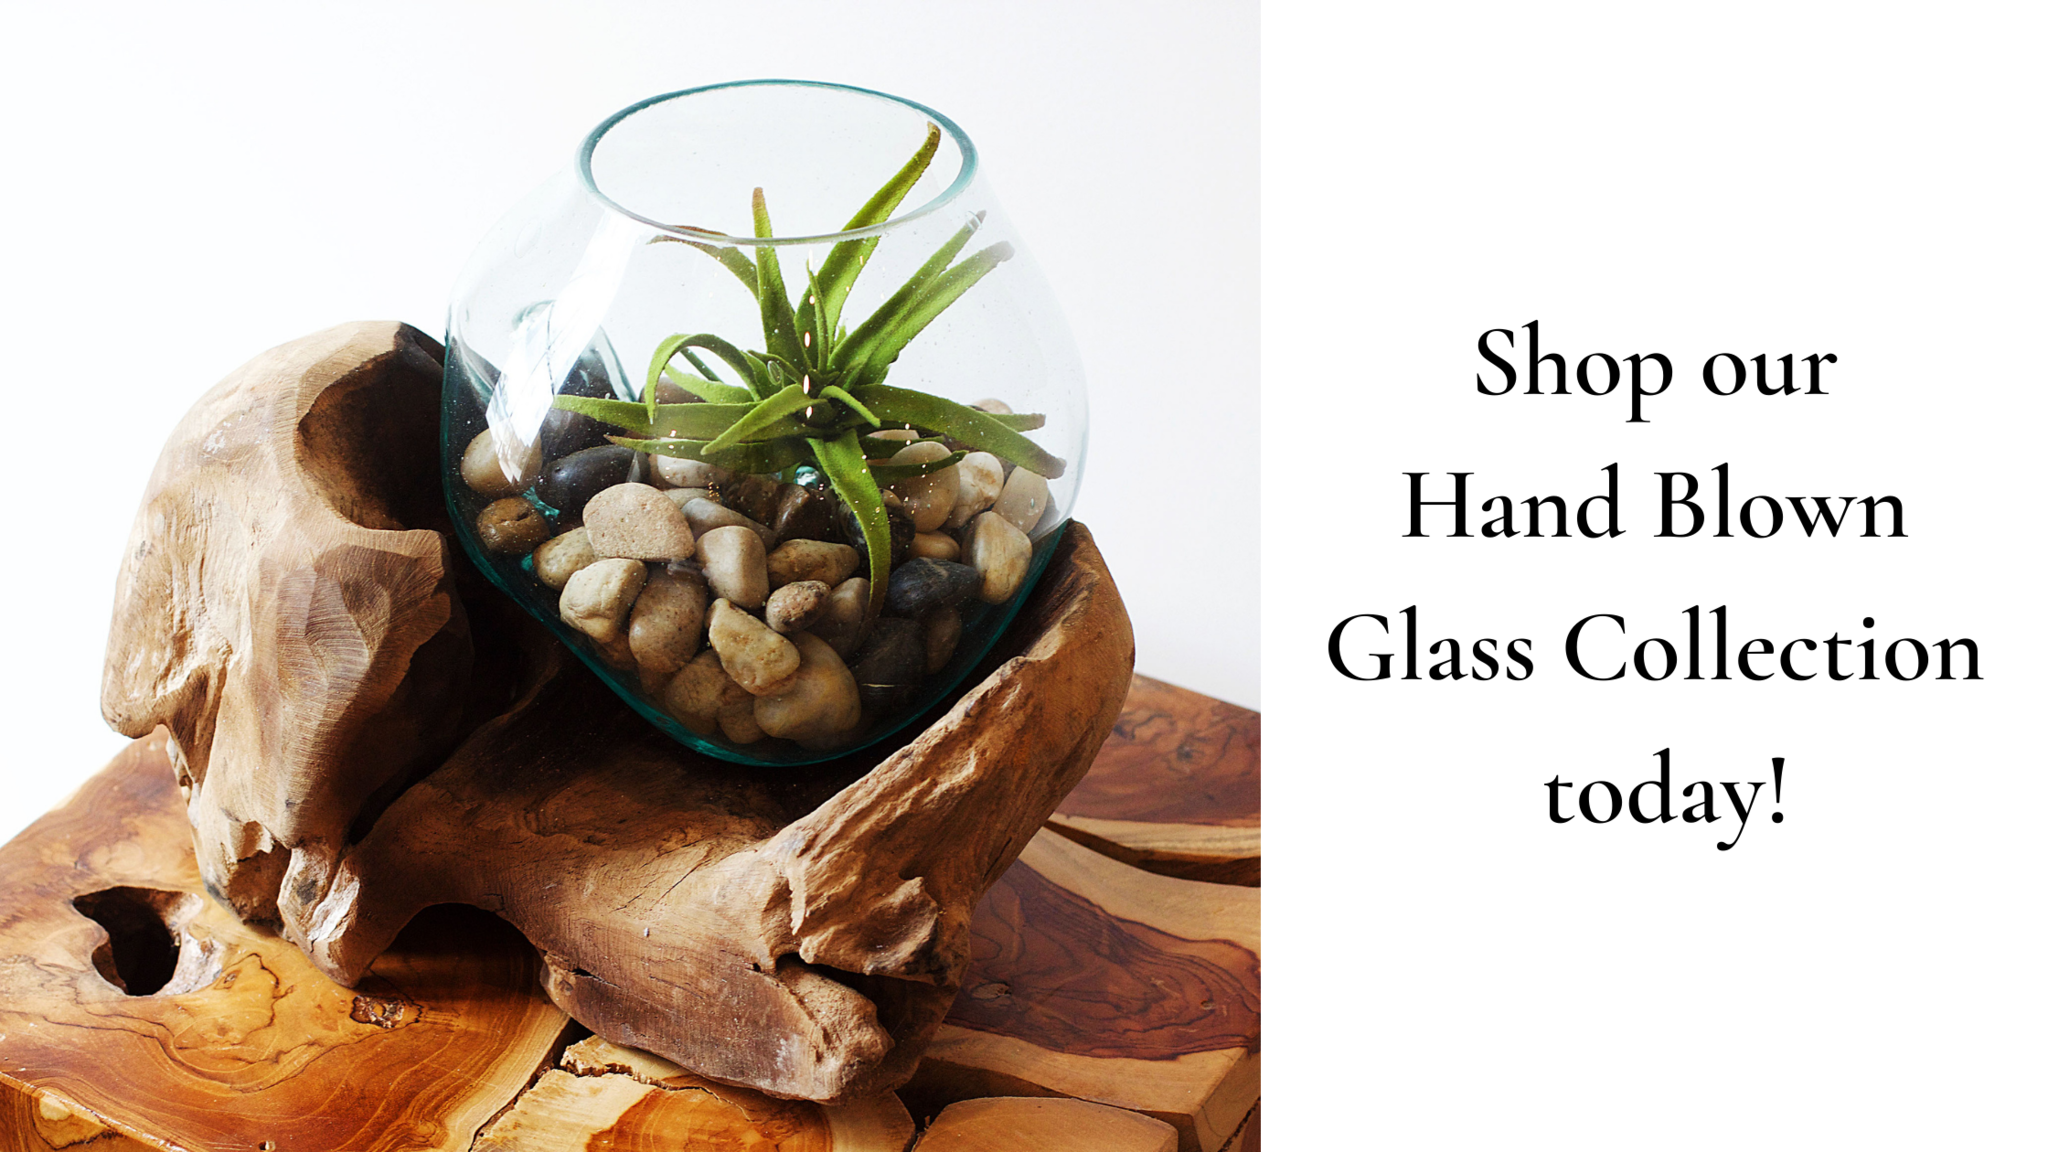 Shop our Handblown Glass Collection Today!